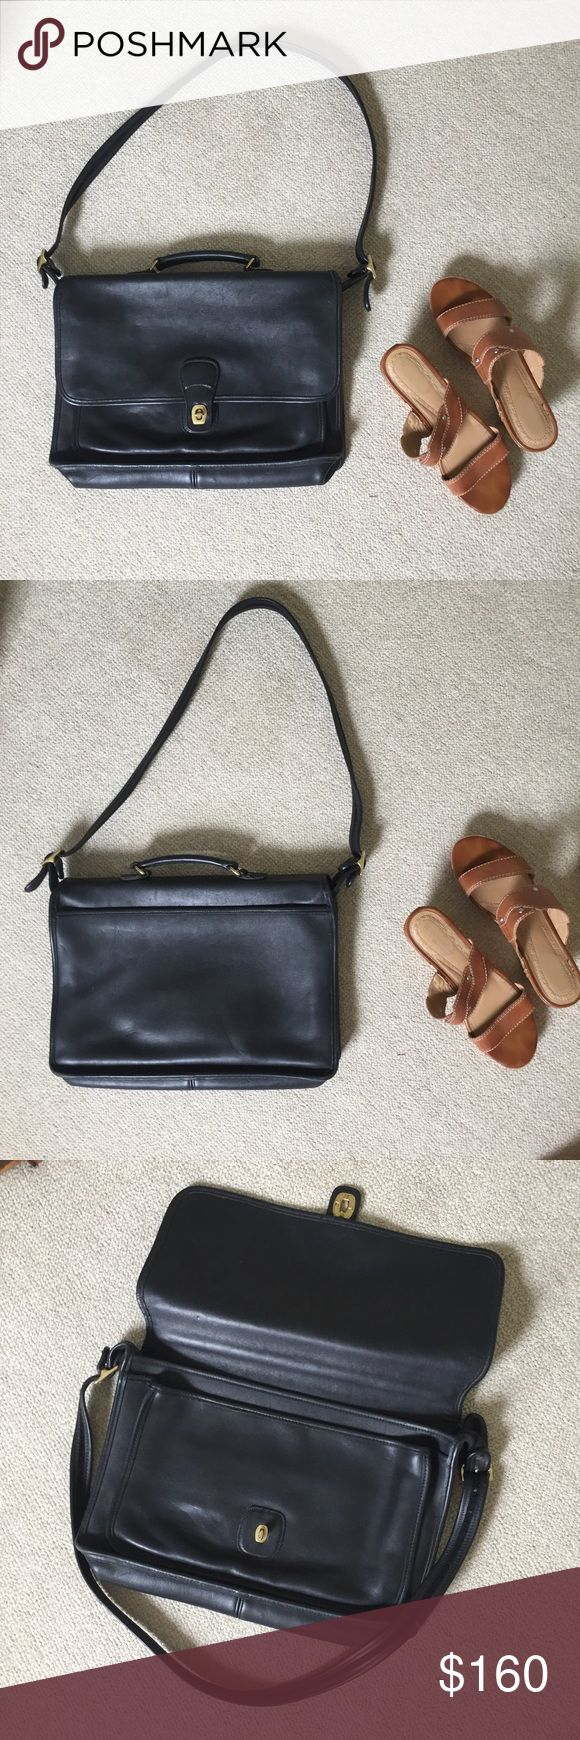 Vintage Coach Leather Briefcase/Laptop Bag Gorgeous Coach leather bag in amazing condition. Can be used as a briefcase or laptop bag. It's black leather but looks like dark grey with a blueish tone. No major flaws at all for a used bag. 100% leather. Coach Bags Crossbody Bags